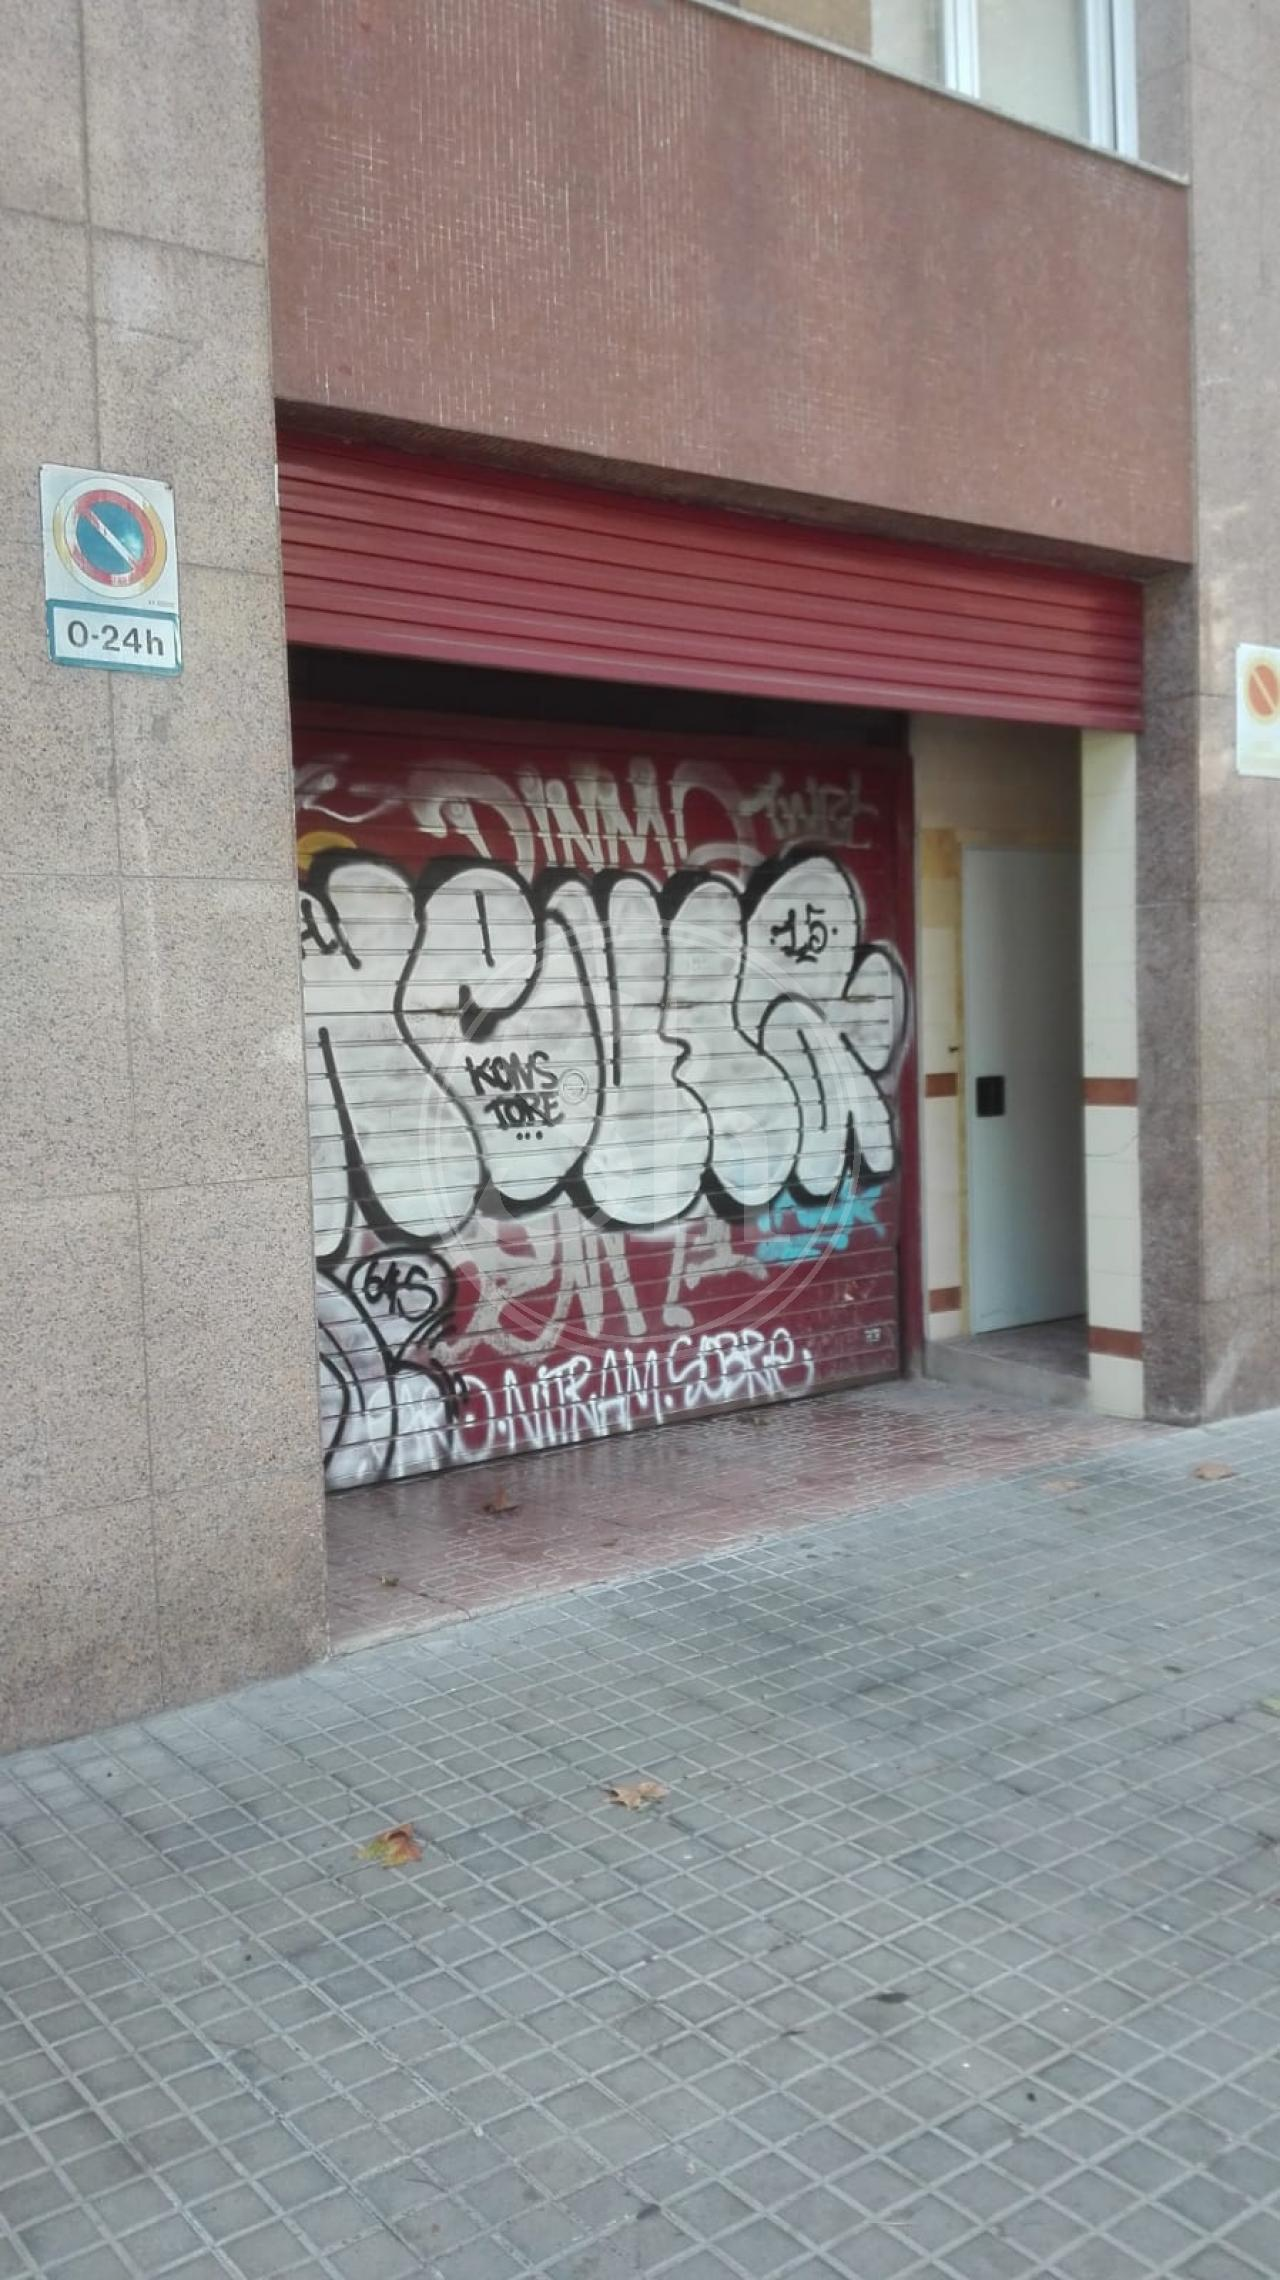 Parking for sale in Barcelona Castillejos - Consell De Cent